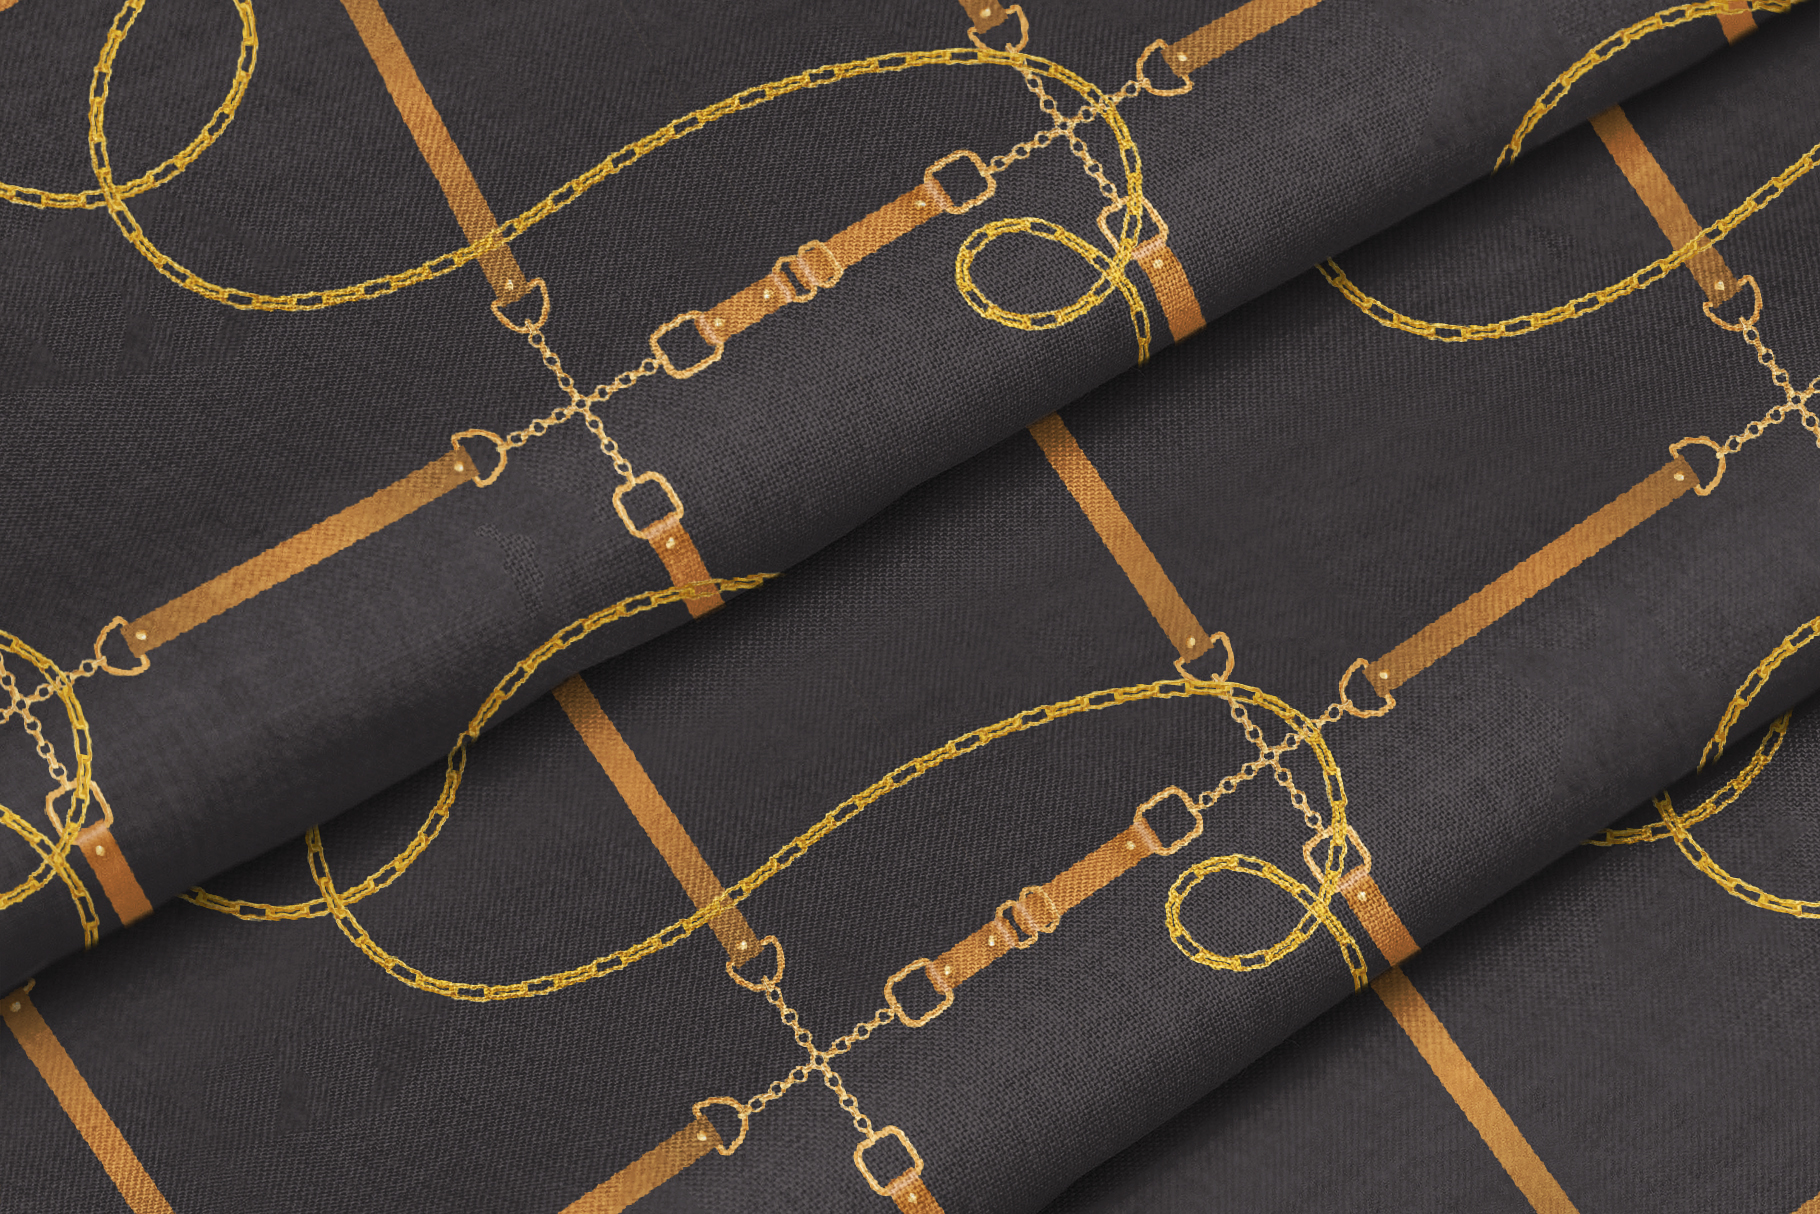 Chains and Belts Seamless Patterns. Set 3 example image 4